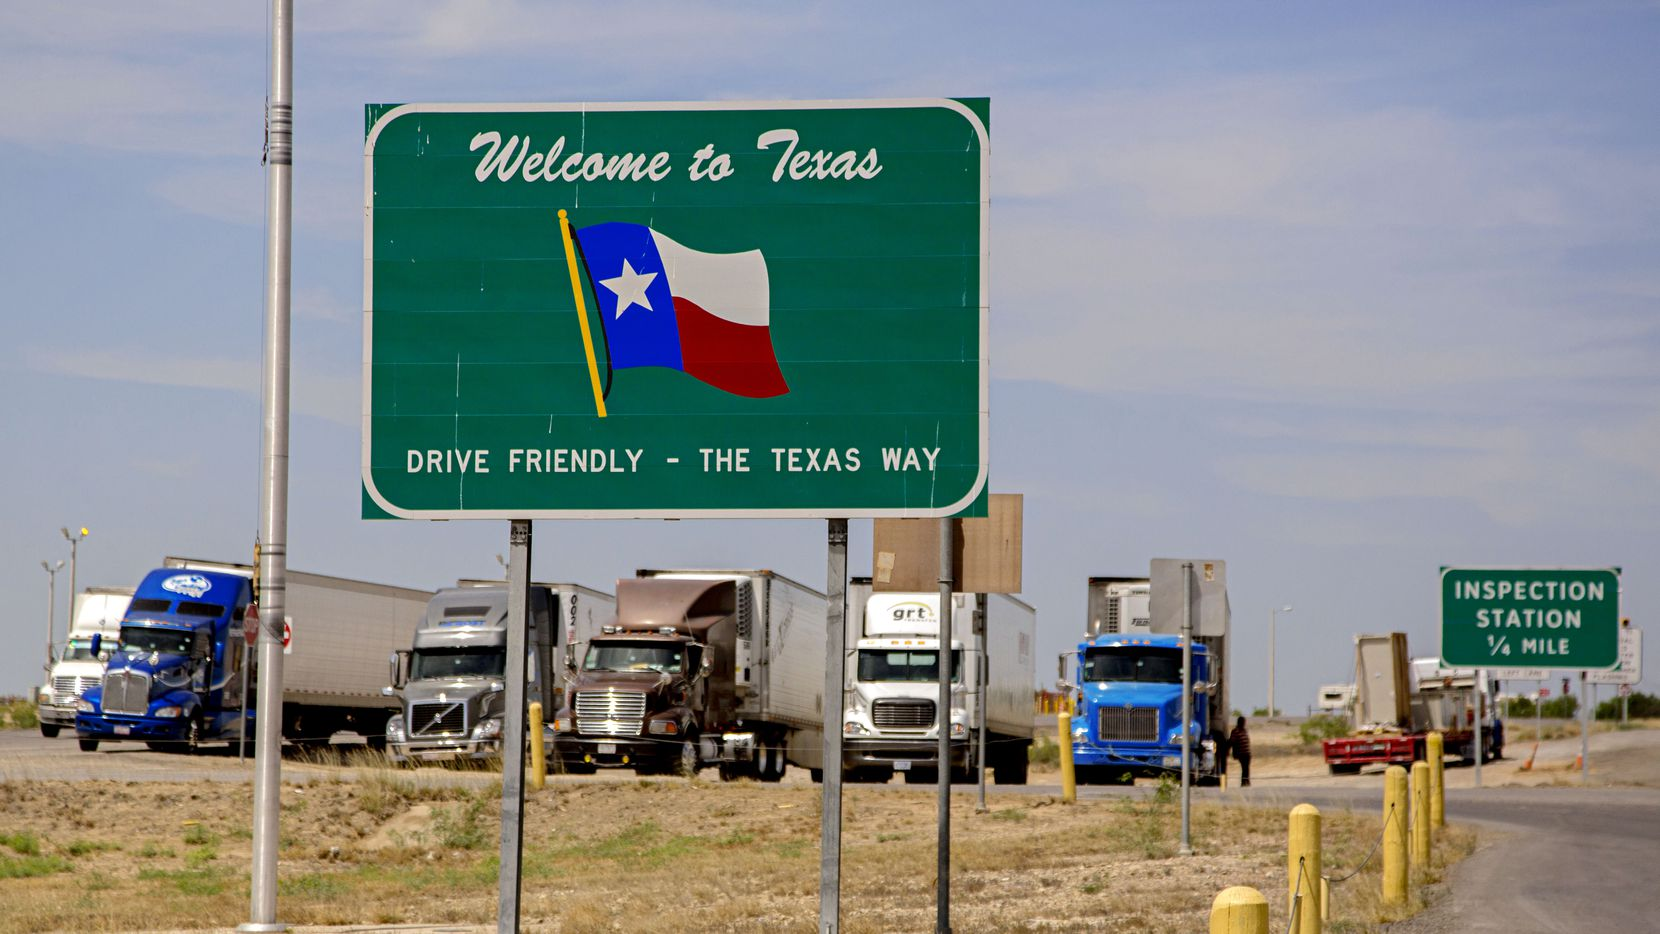 Most Alaskans leaving the state are headed to Texas.